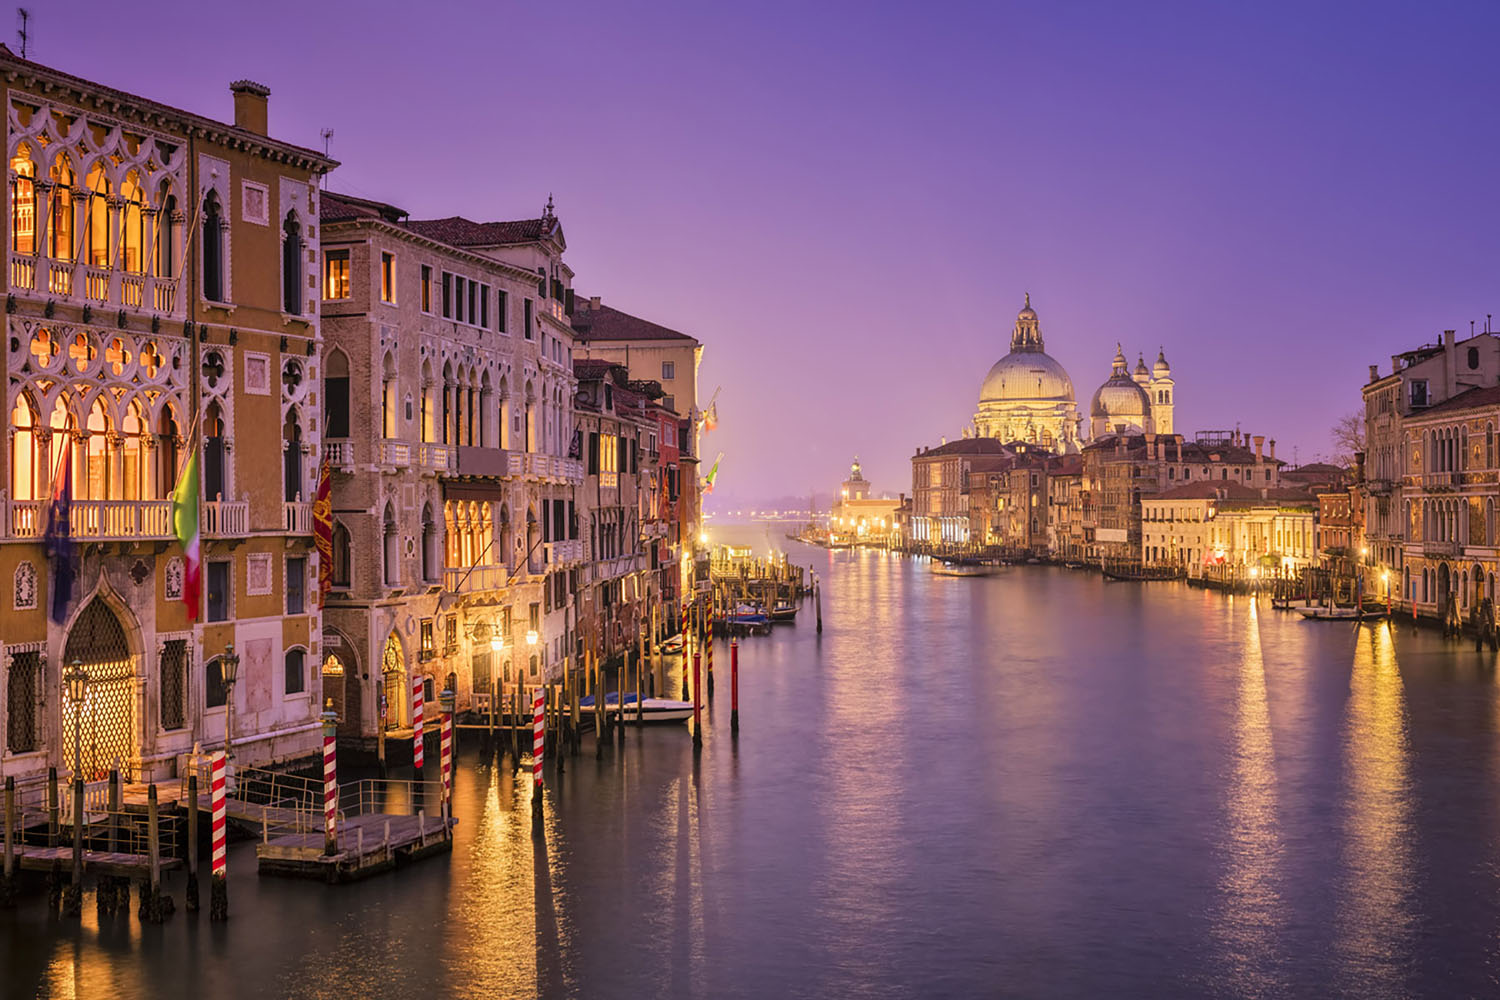 Venice, one of the most haunted cities in the world, at night.